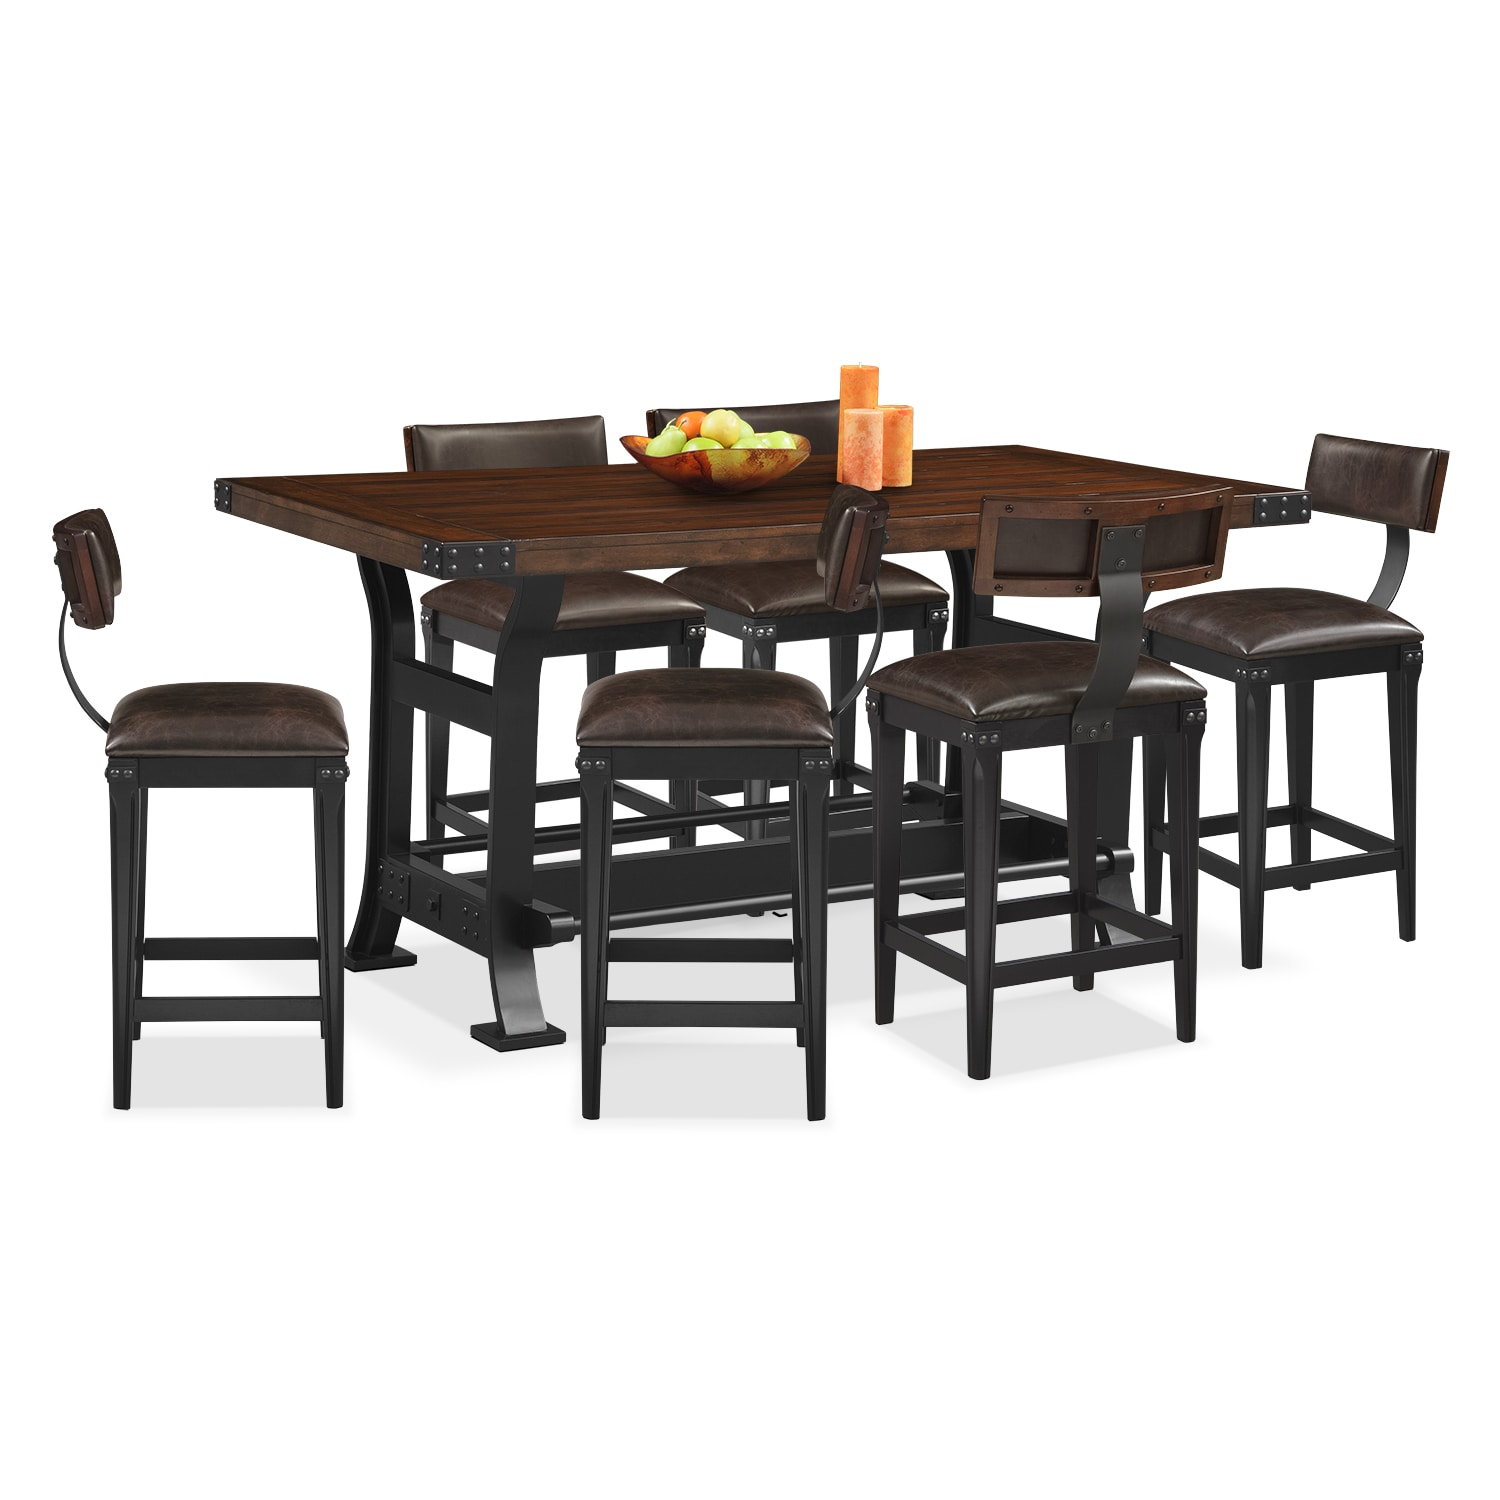 Dining Room Furniture - Newcastle 7 Pc. Counter-Height Dining Room w/ 6 Stools